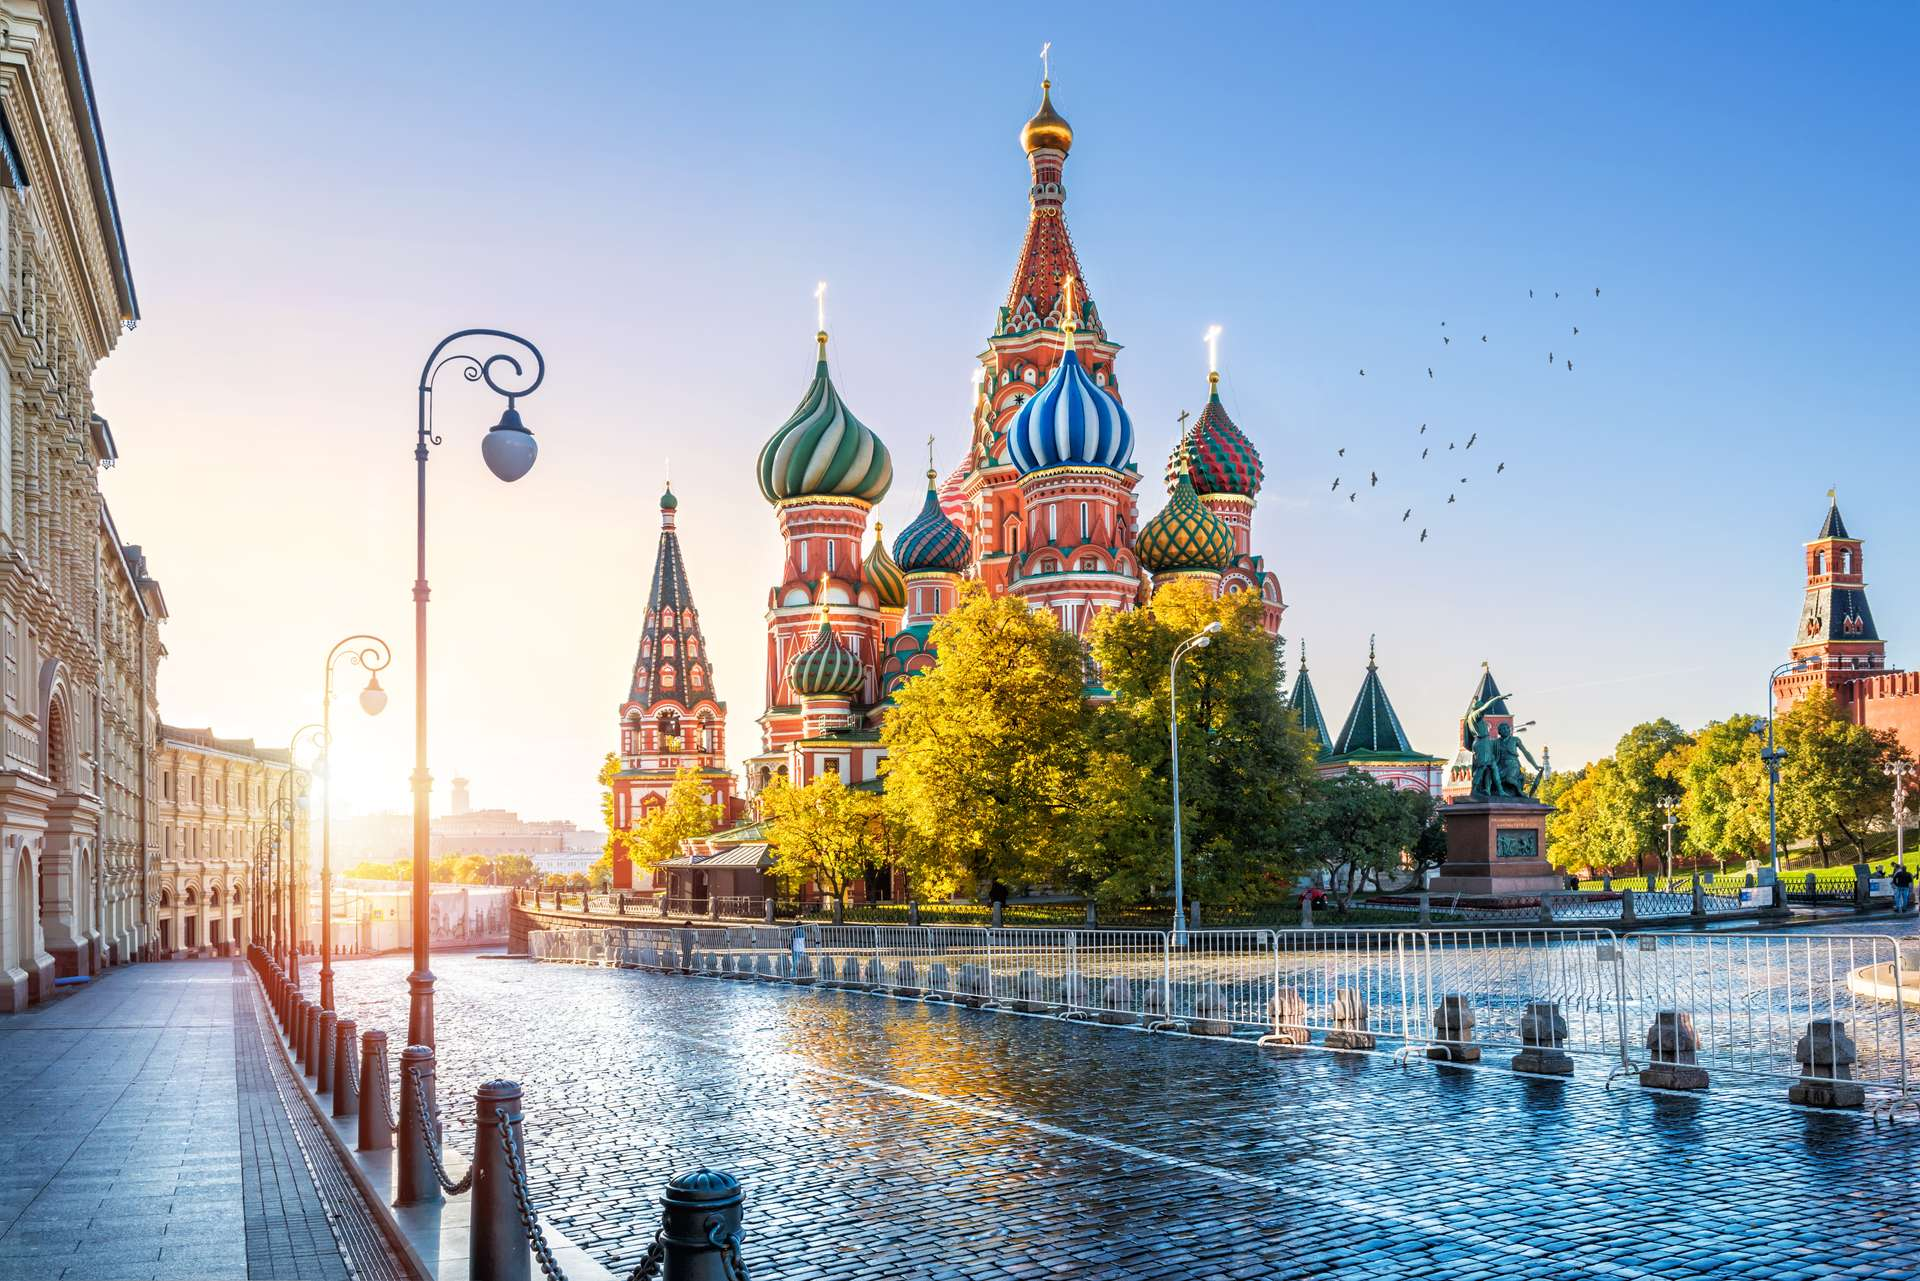 Rusland Moskou St. Basil s Cathedral on Red Square